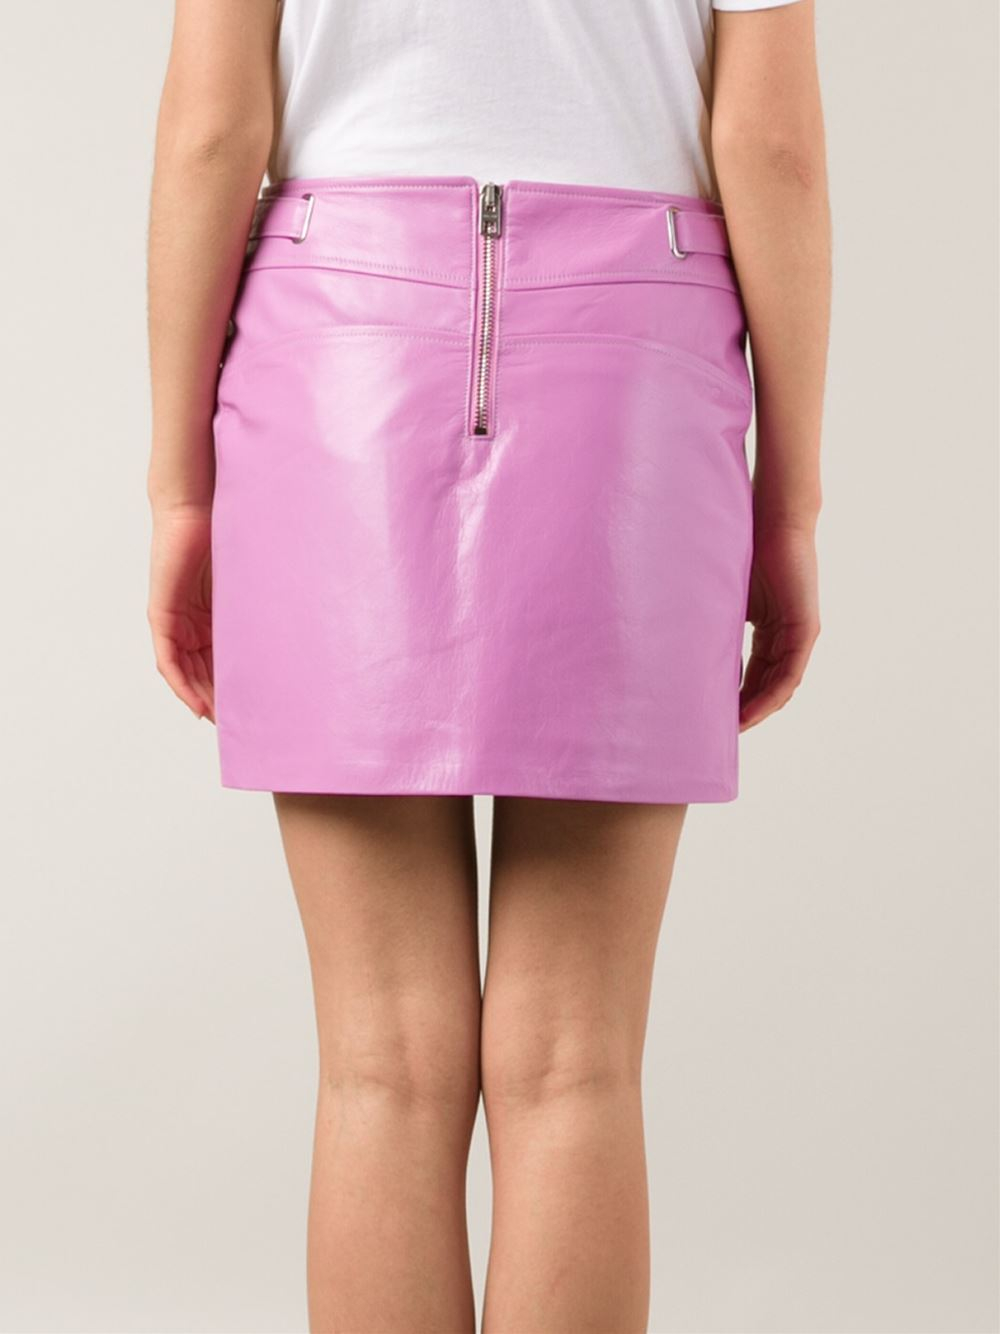 COACH X Gary Baseman Skirt in Pink & Purple (Pink)